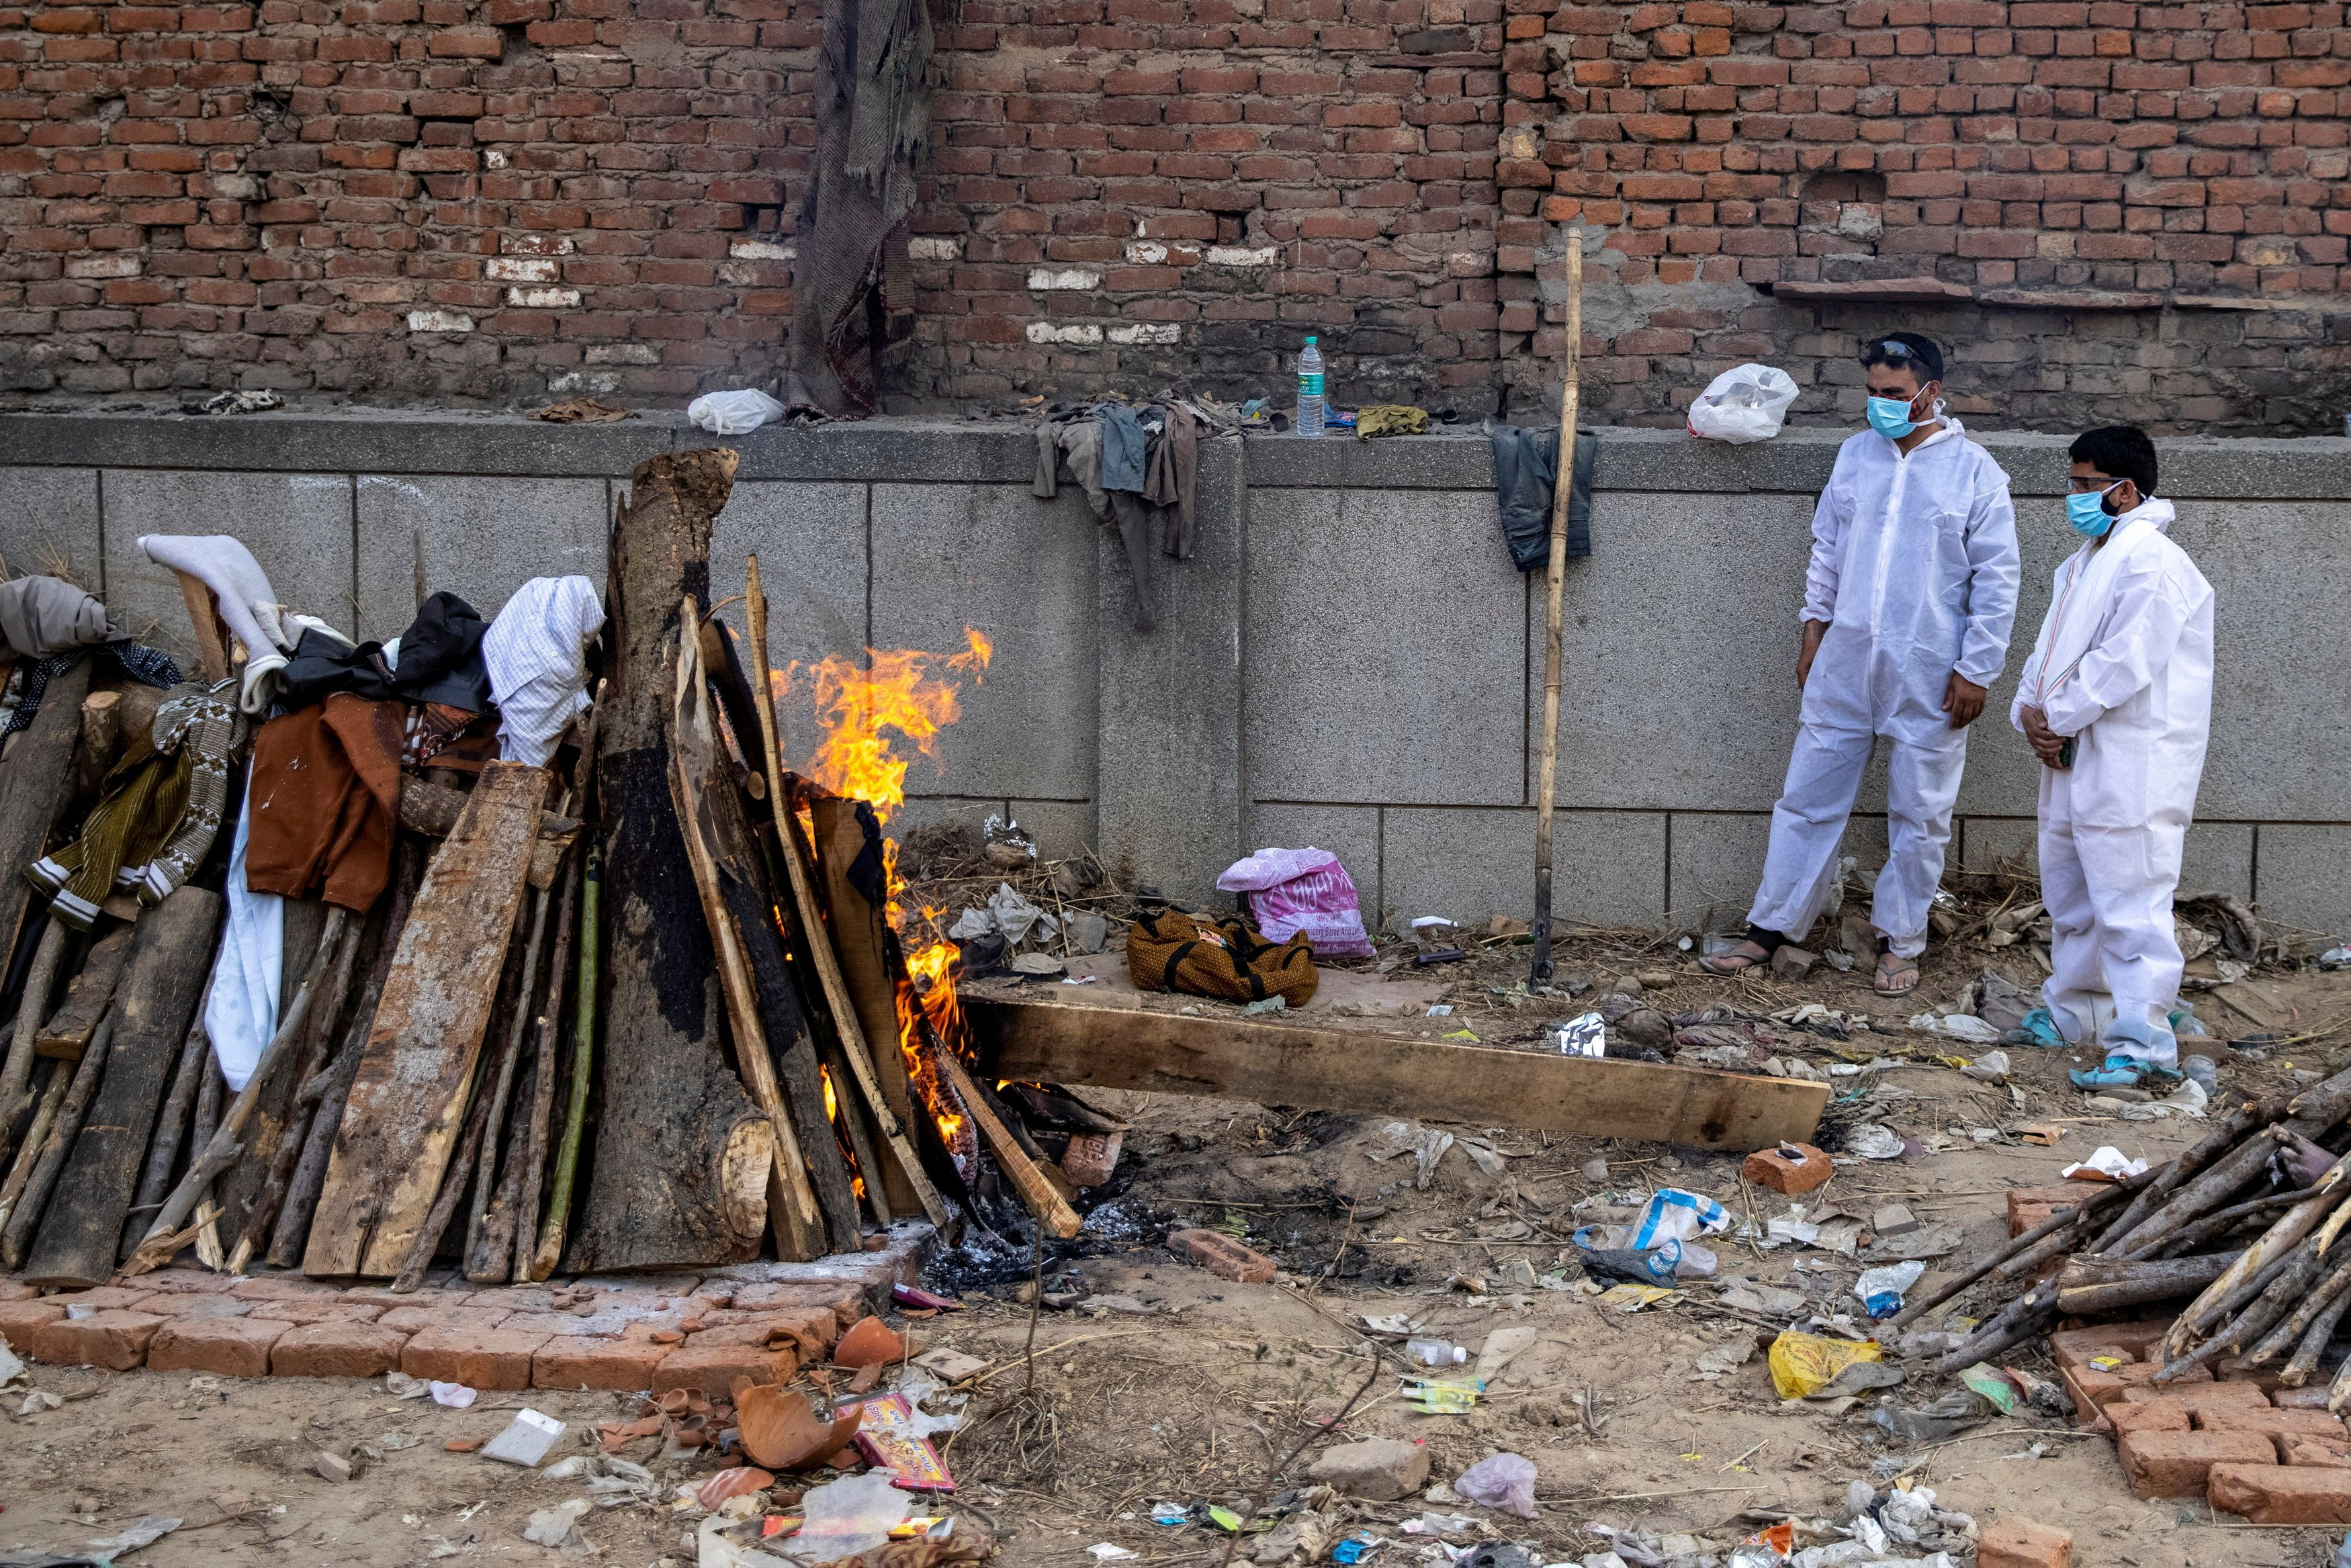 Amid second wave of coronavirus in India and oxygen shortage, mass cremations started as Delhi has been facing a deluge of COVID-19 deaths.